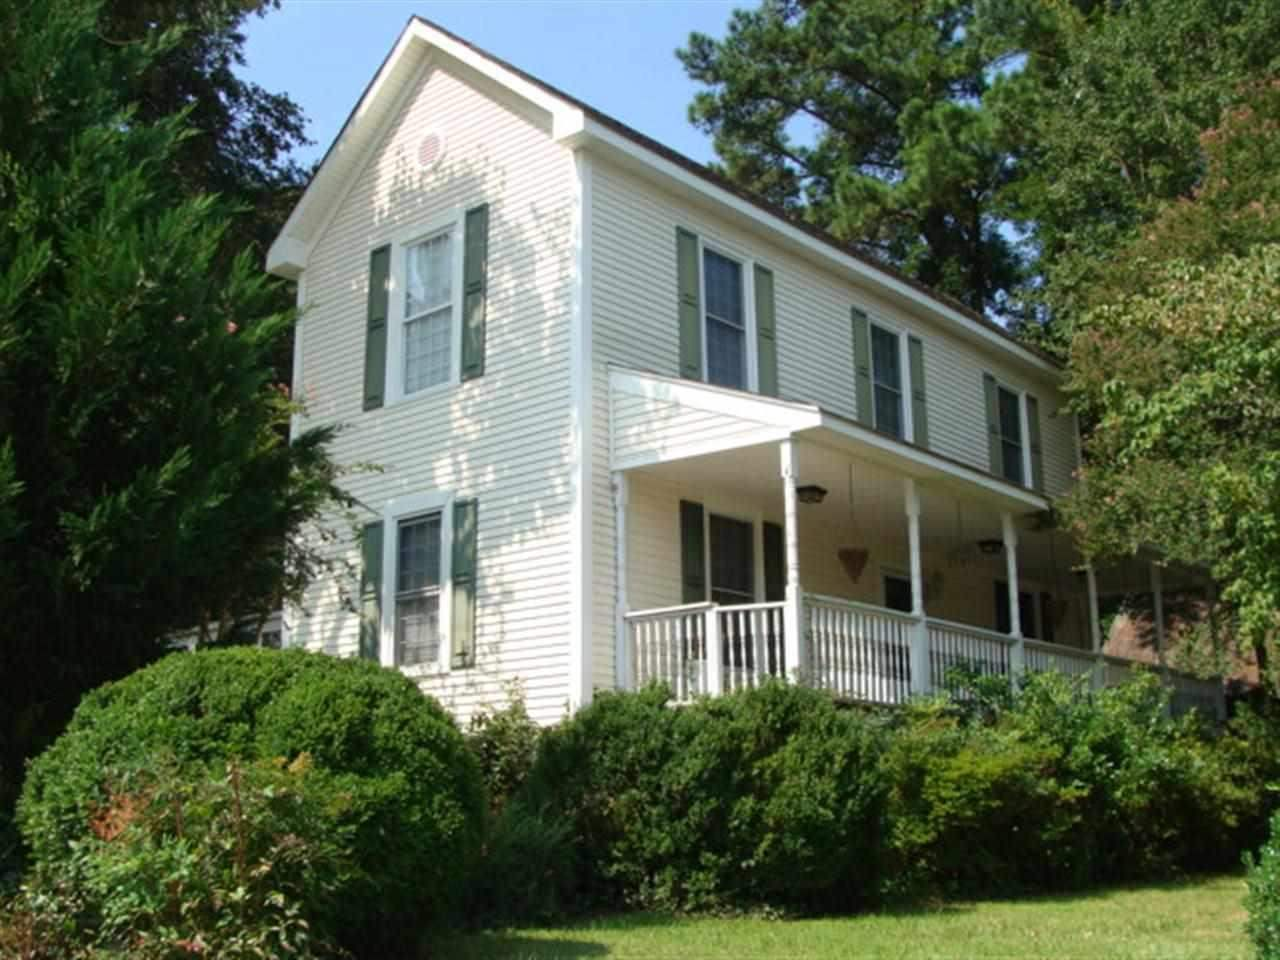 Rental Homes for Rent, ListingId:30316711, location: 501 W Main St. Walhalla 29691